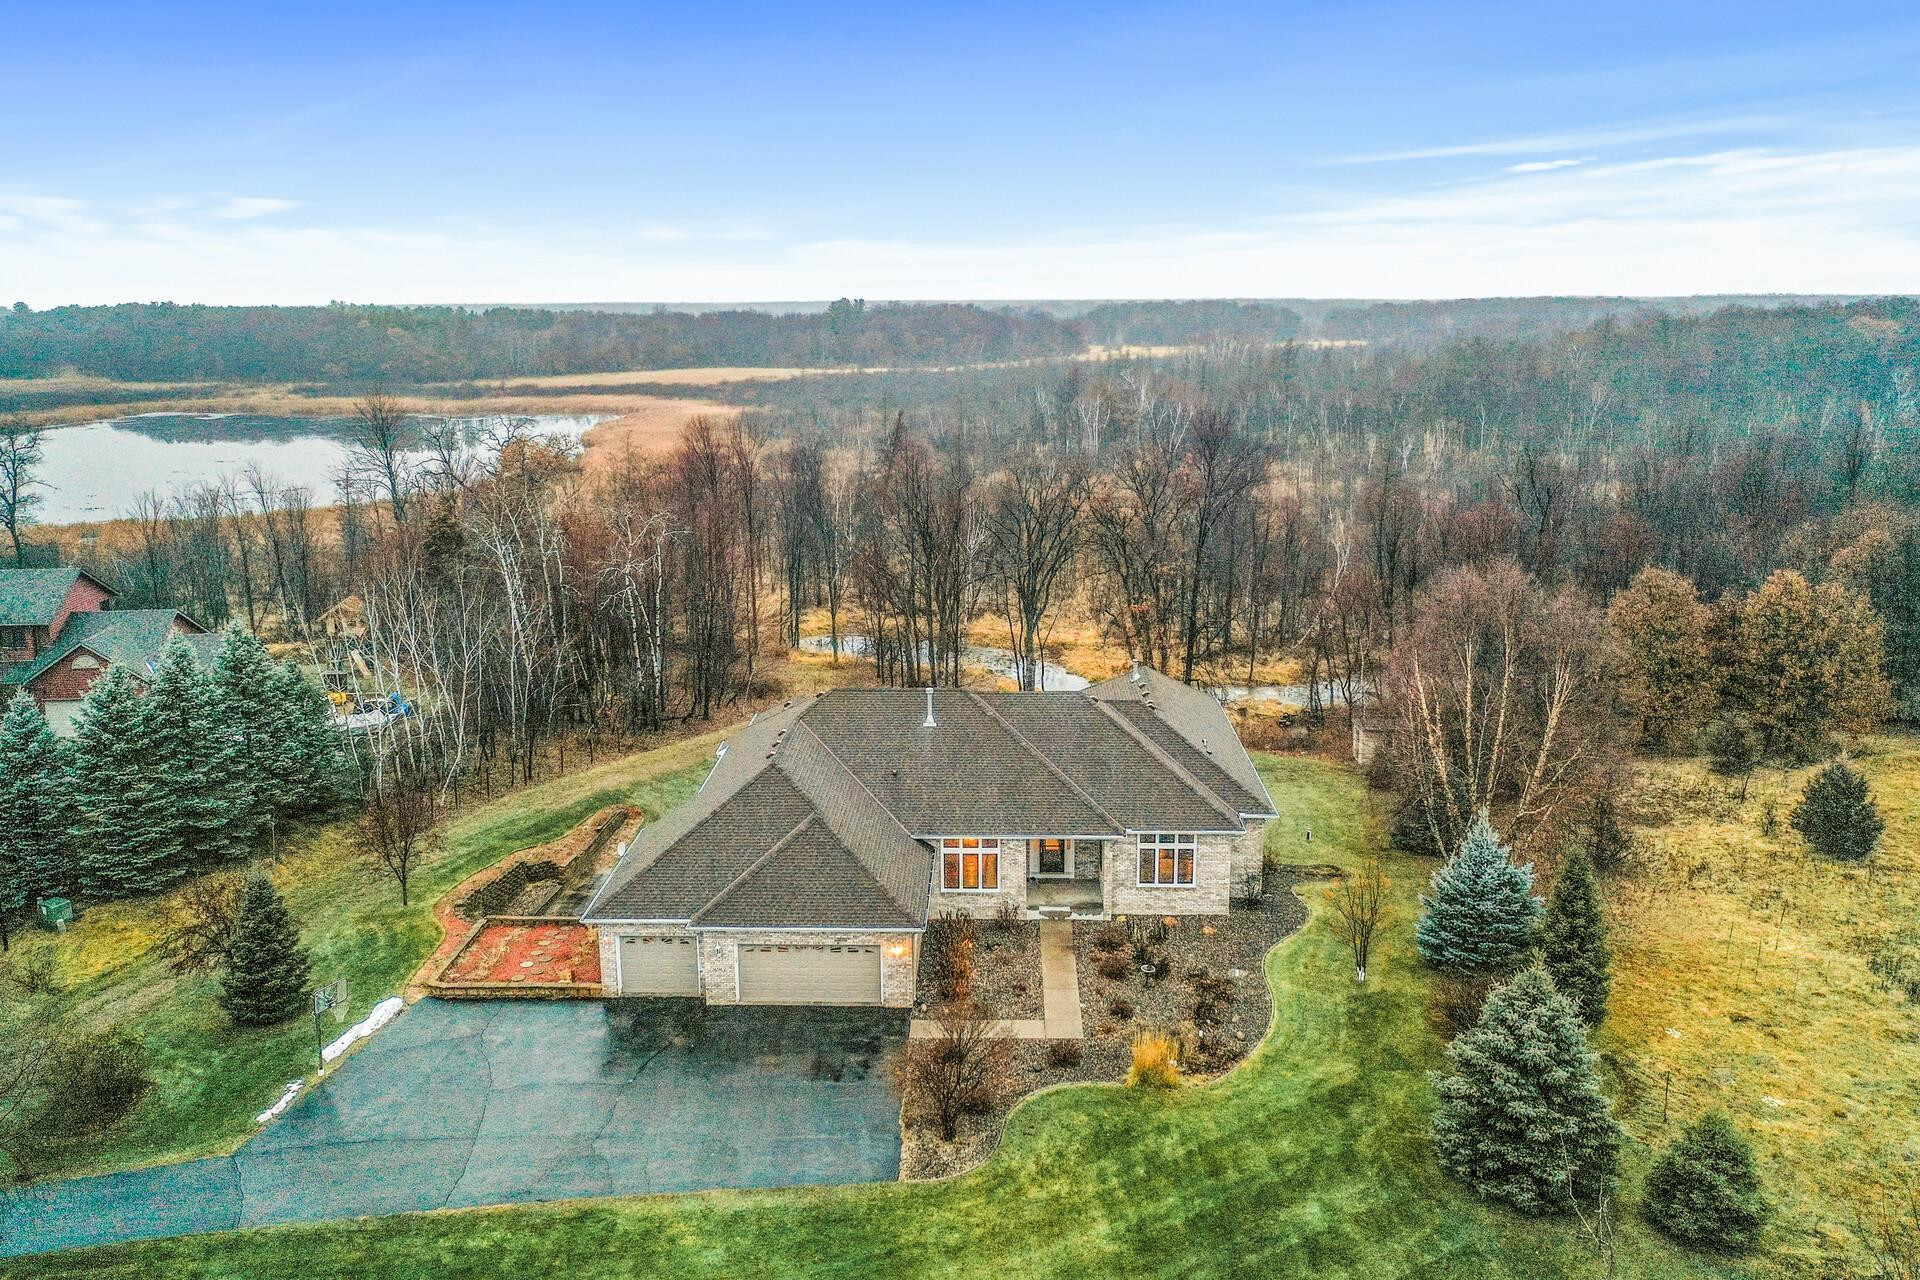 The property extends back into the wooded area toward the large pond in back.